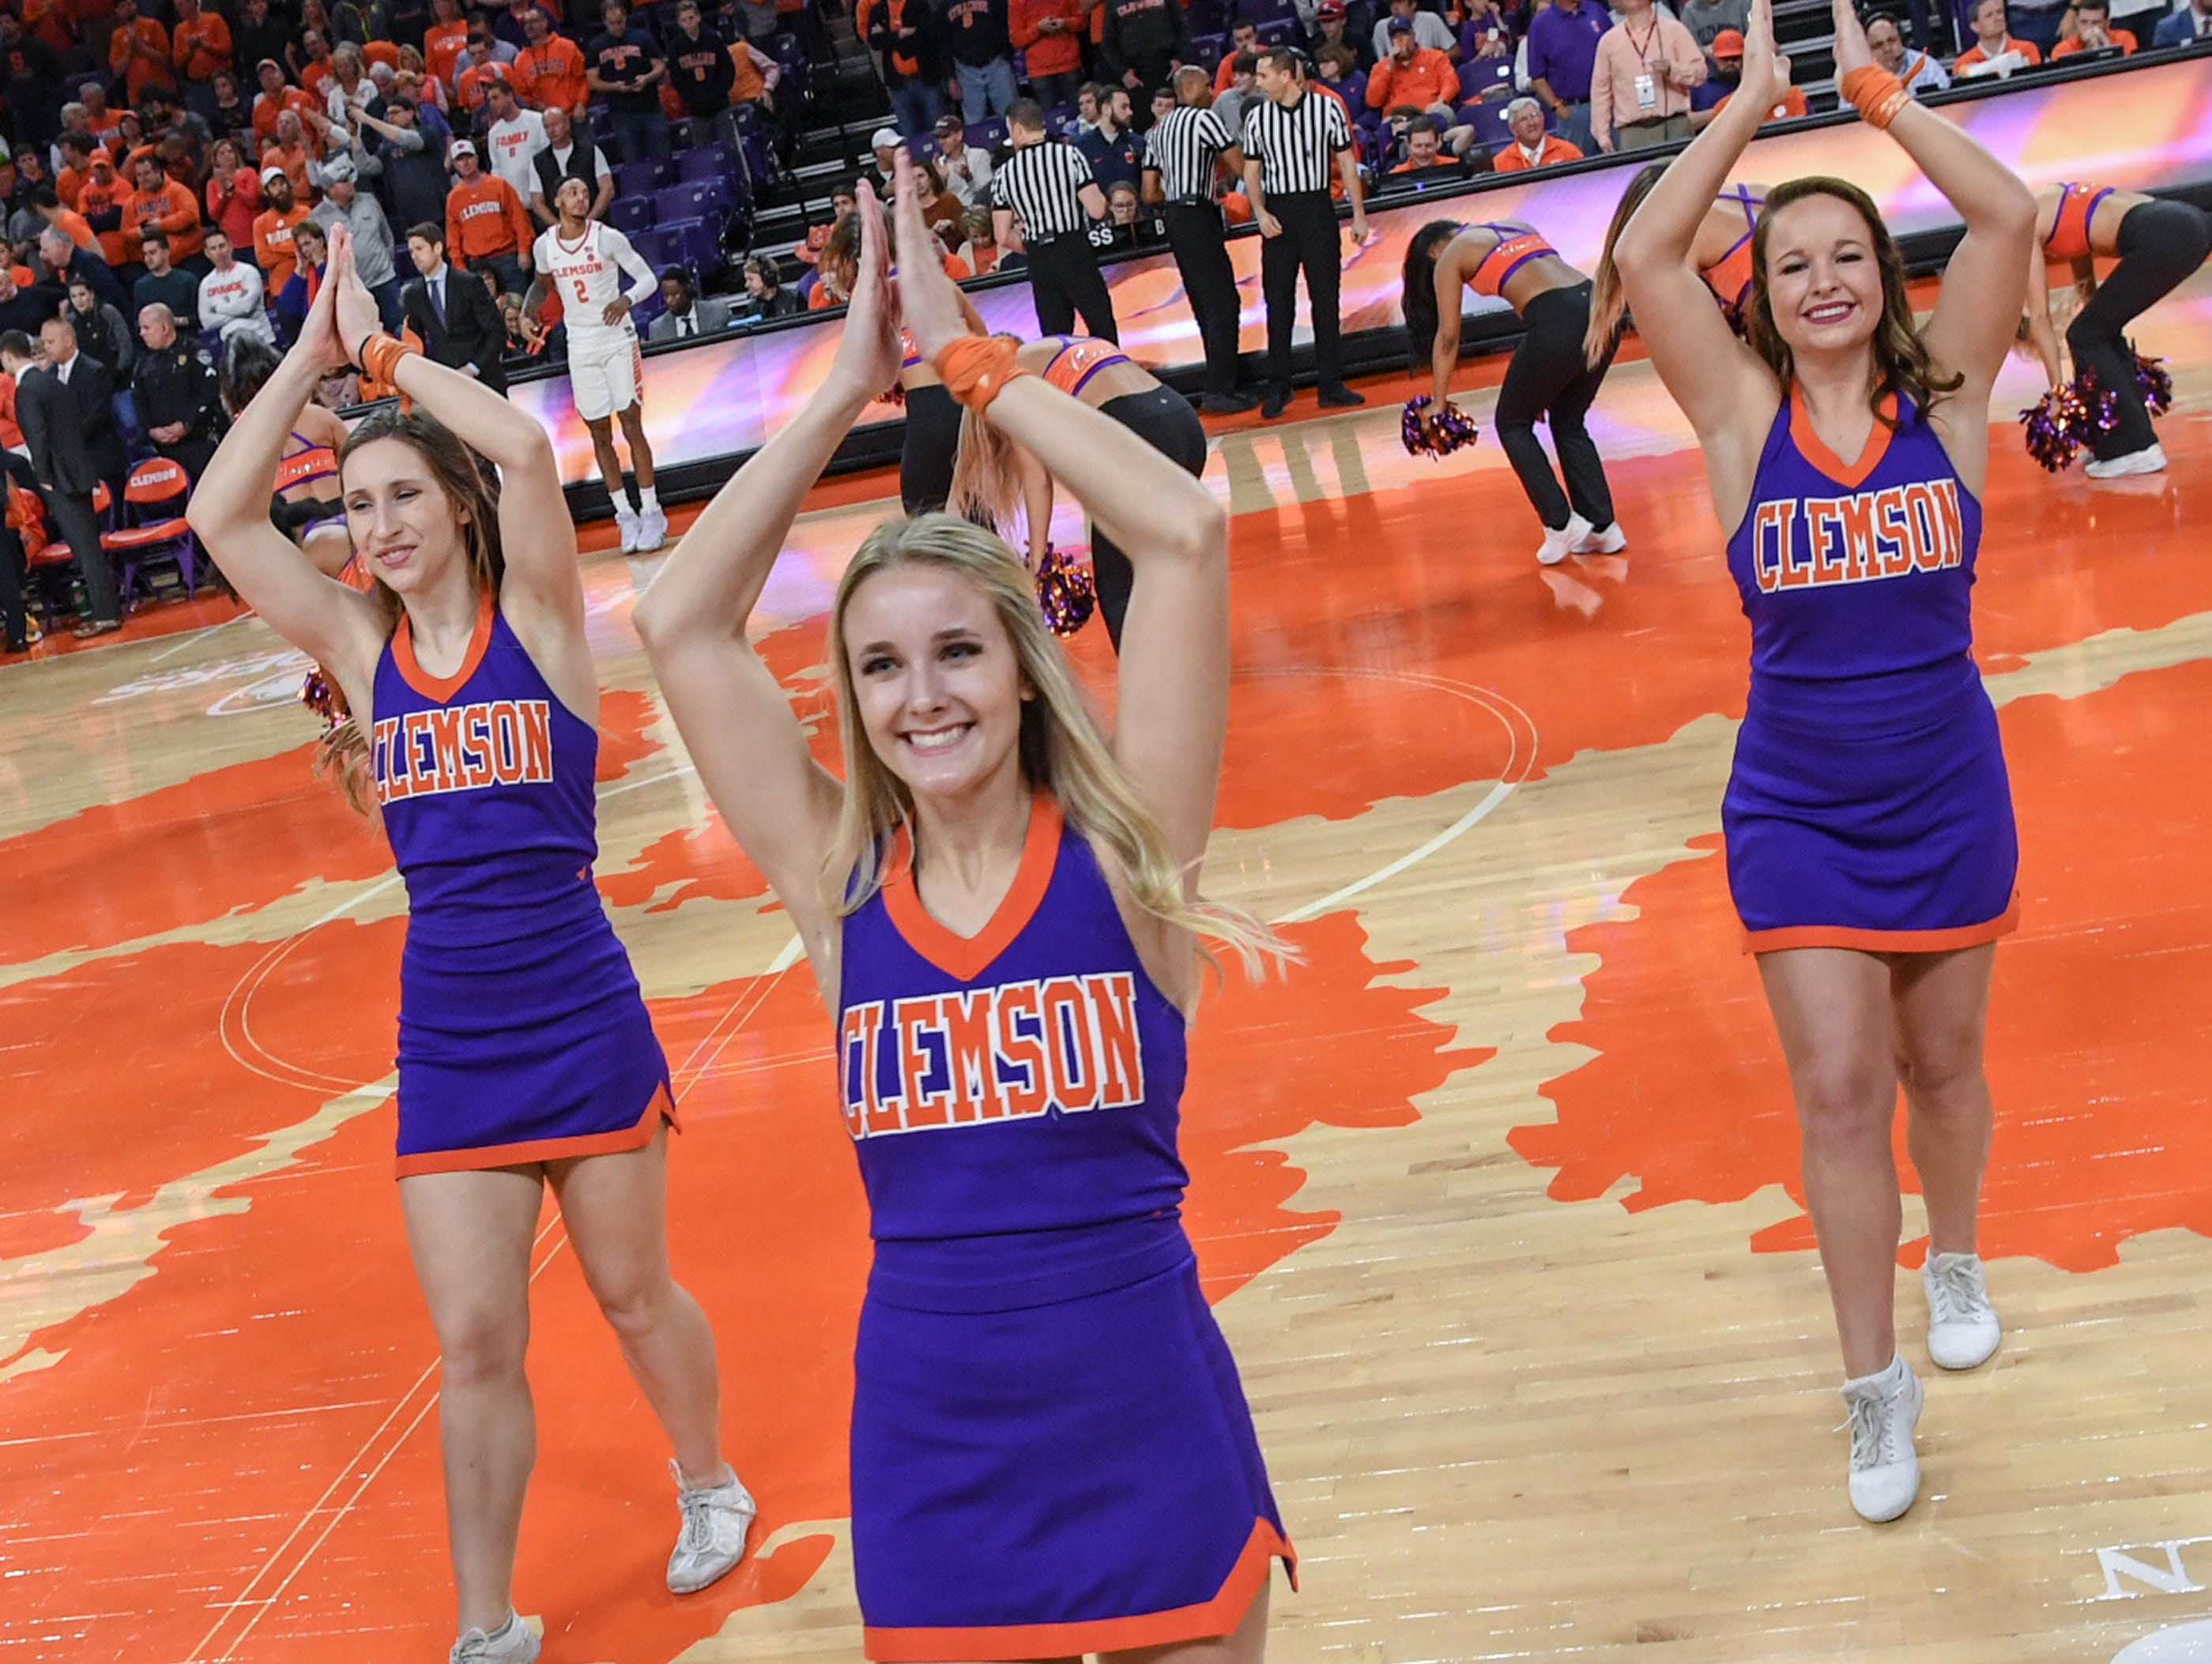 Clemson cheerleaders perform during the first half at Littlejohn Coliseum in Clemson Saturday, March 9, 2019.